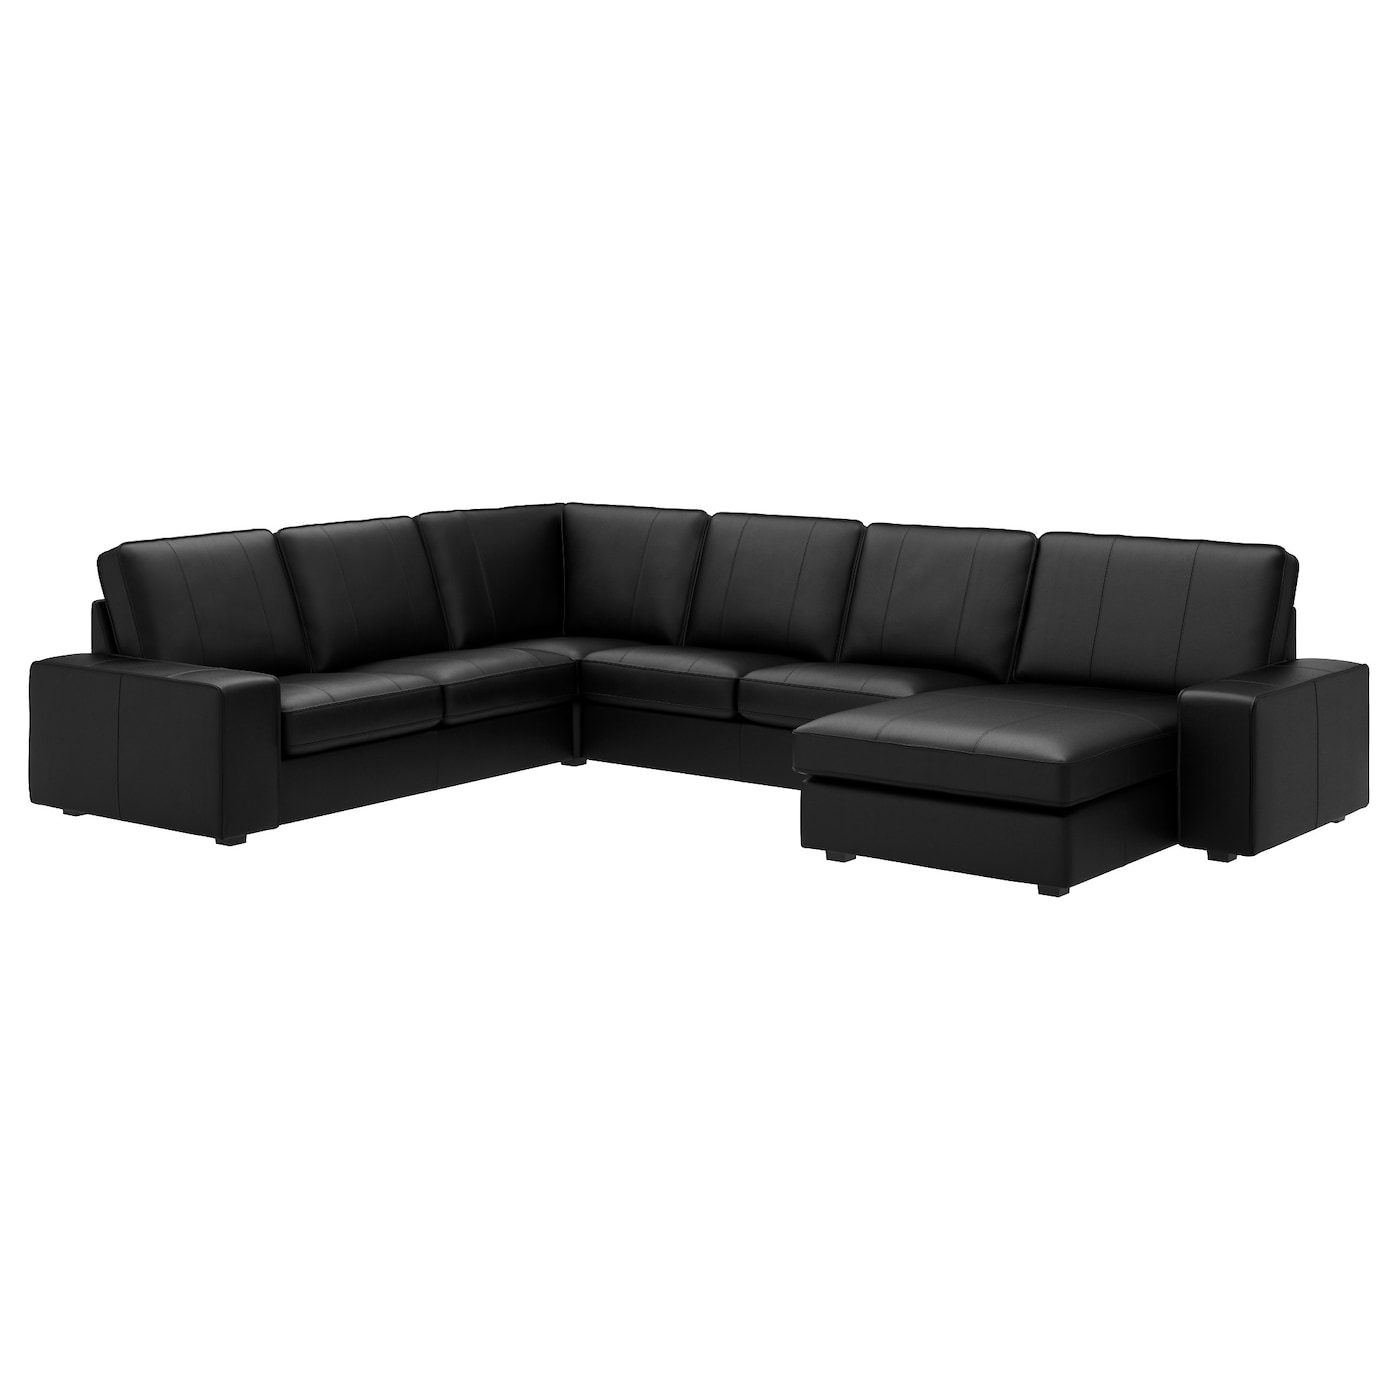 Kivik Corner Sofa 5 Seat With Chaise Longue Grann Bomstad Black Ikea